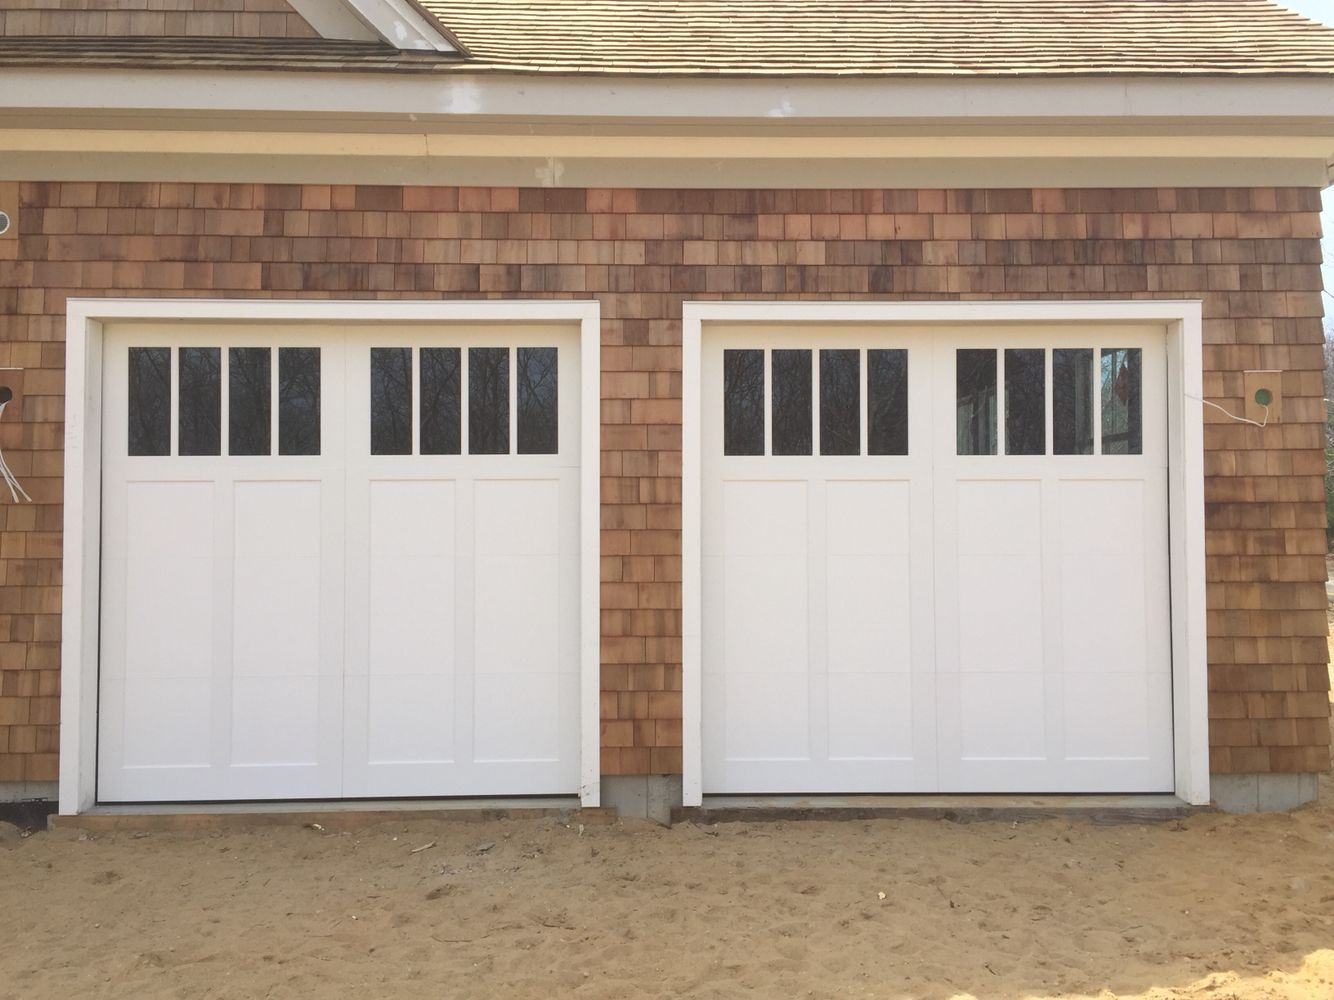 Fimbel Ads 8x8 American Legends Collection Outdoor Decor Carriage Garage Doors Decor